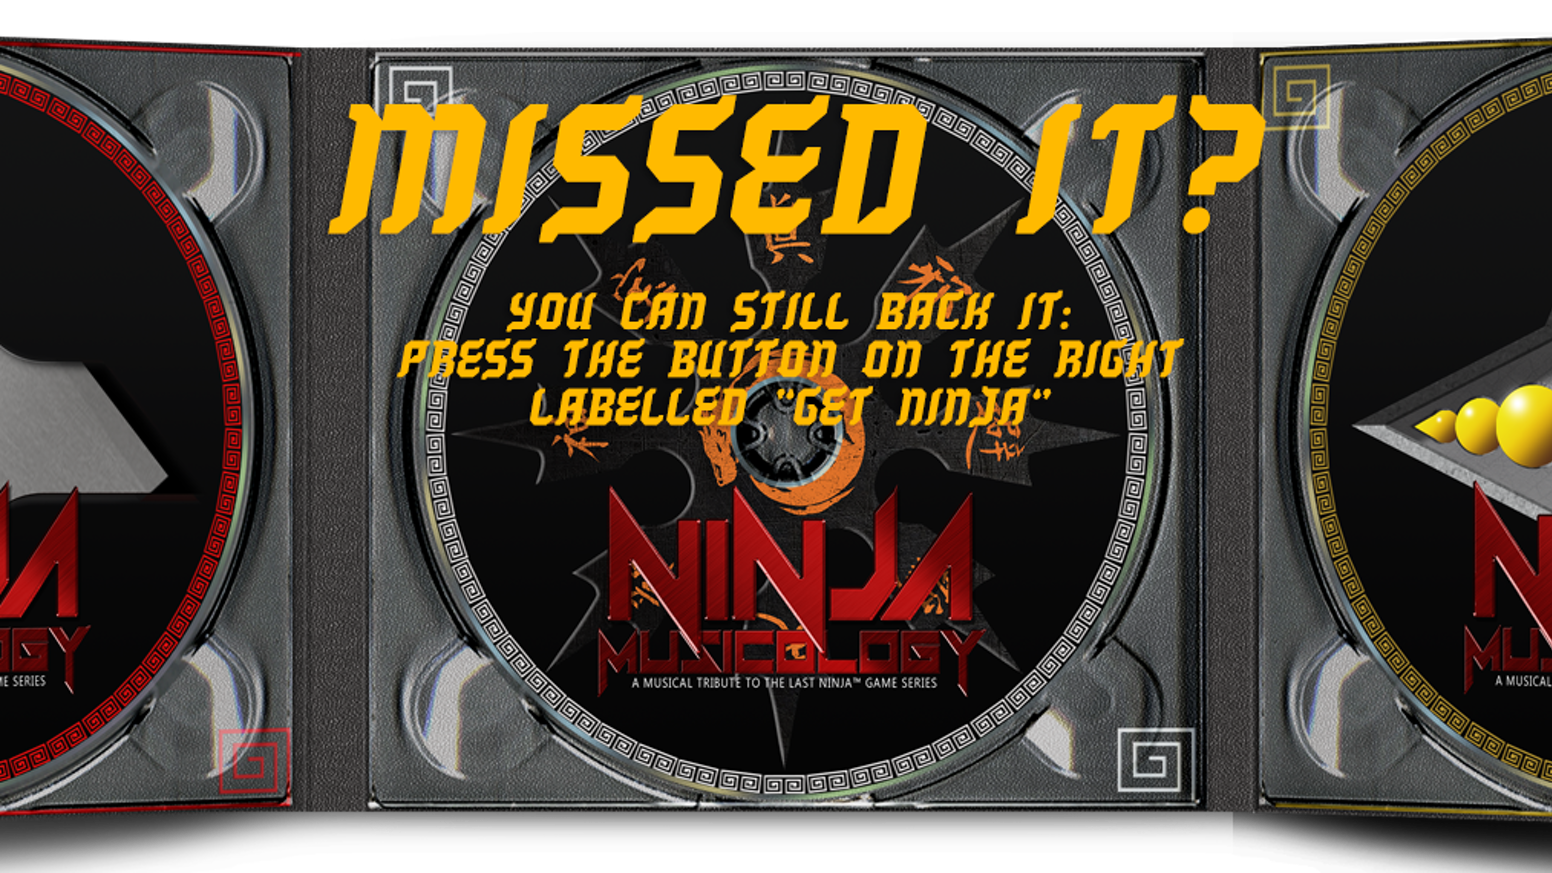 Triple tribute album with rock/metal covers of themes from The Last Ninja™ game series, a live concert and concert Blu-Ray.